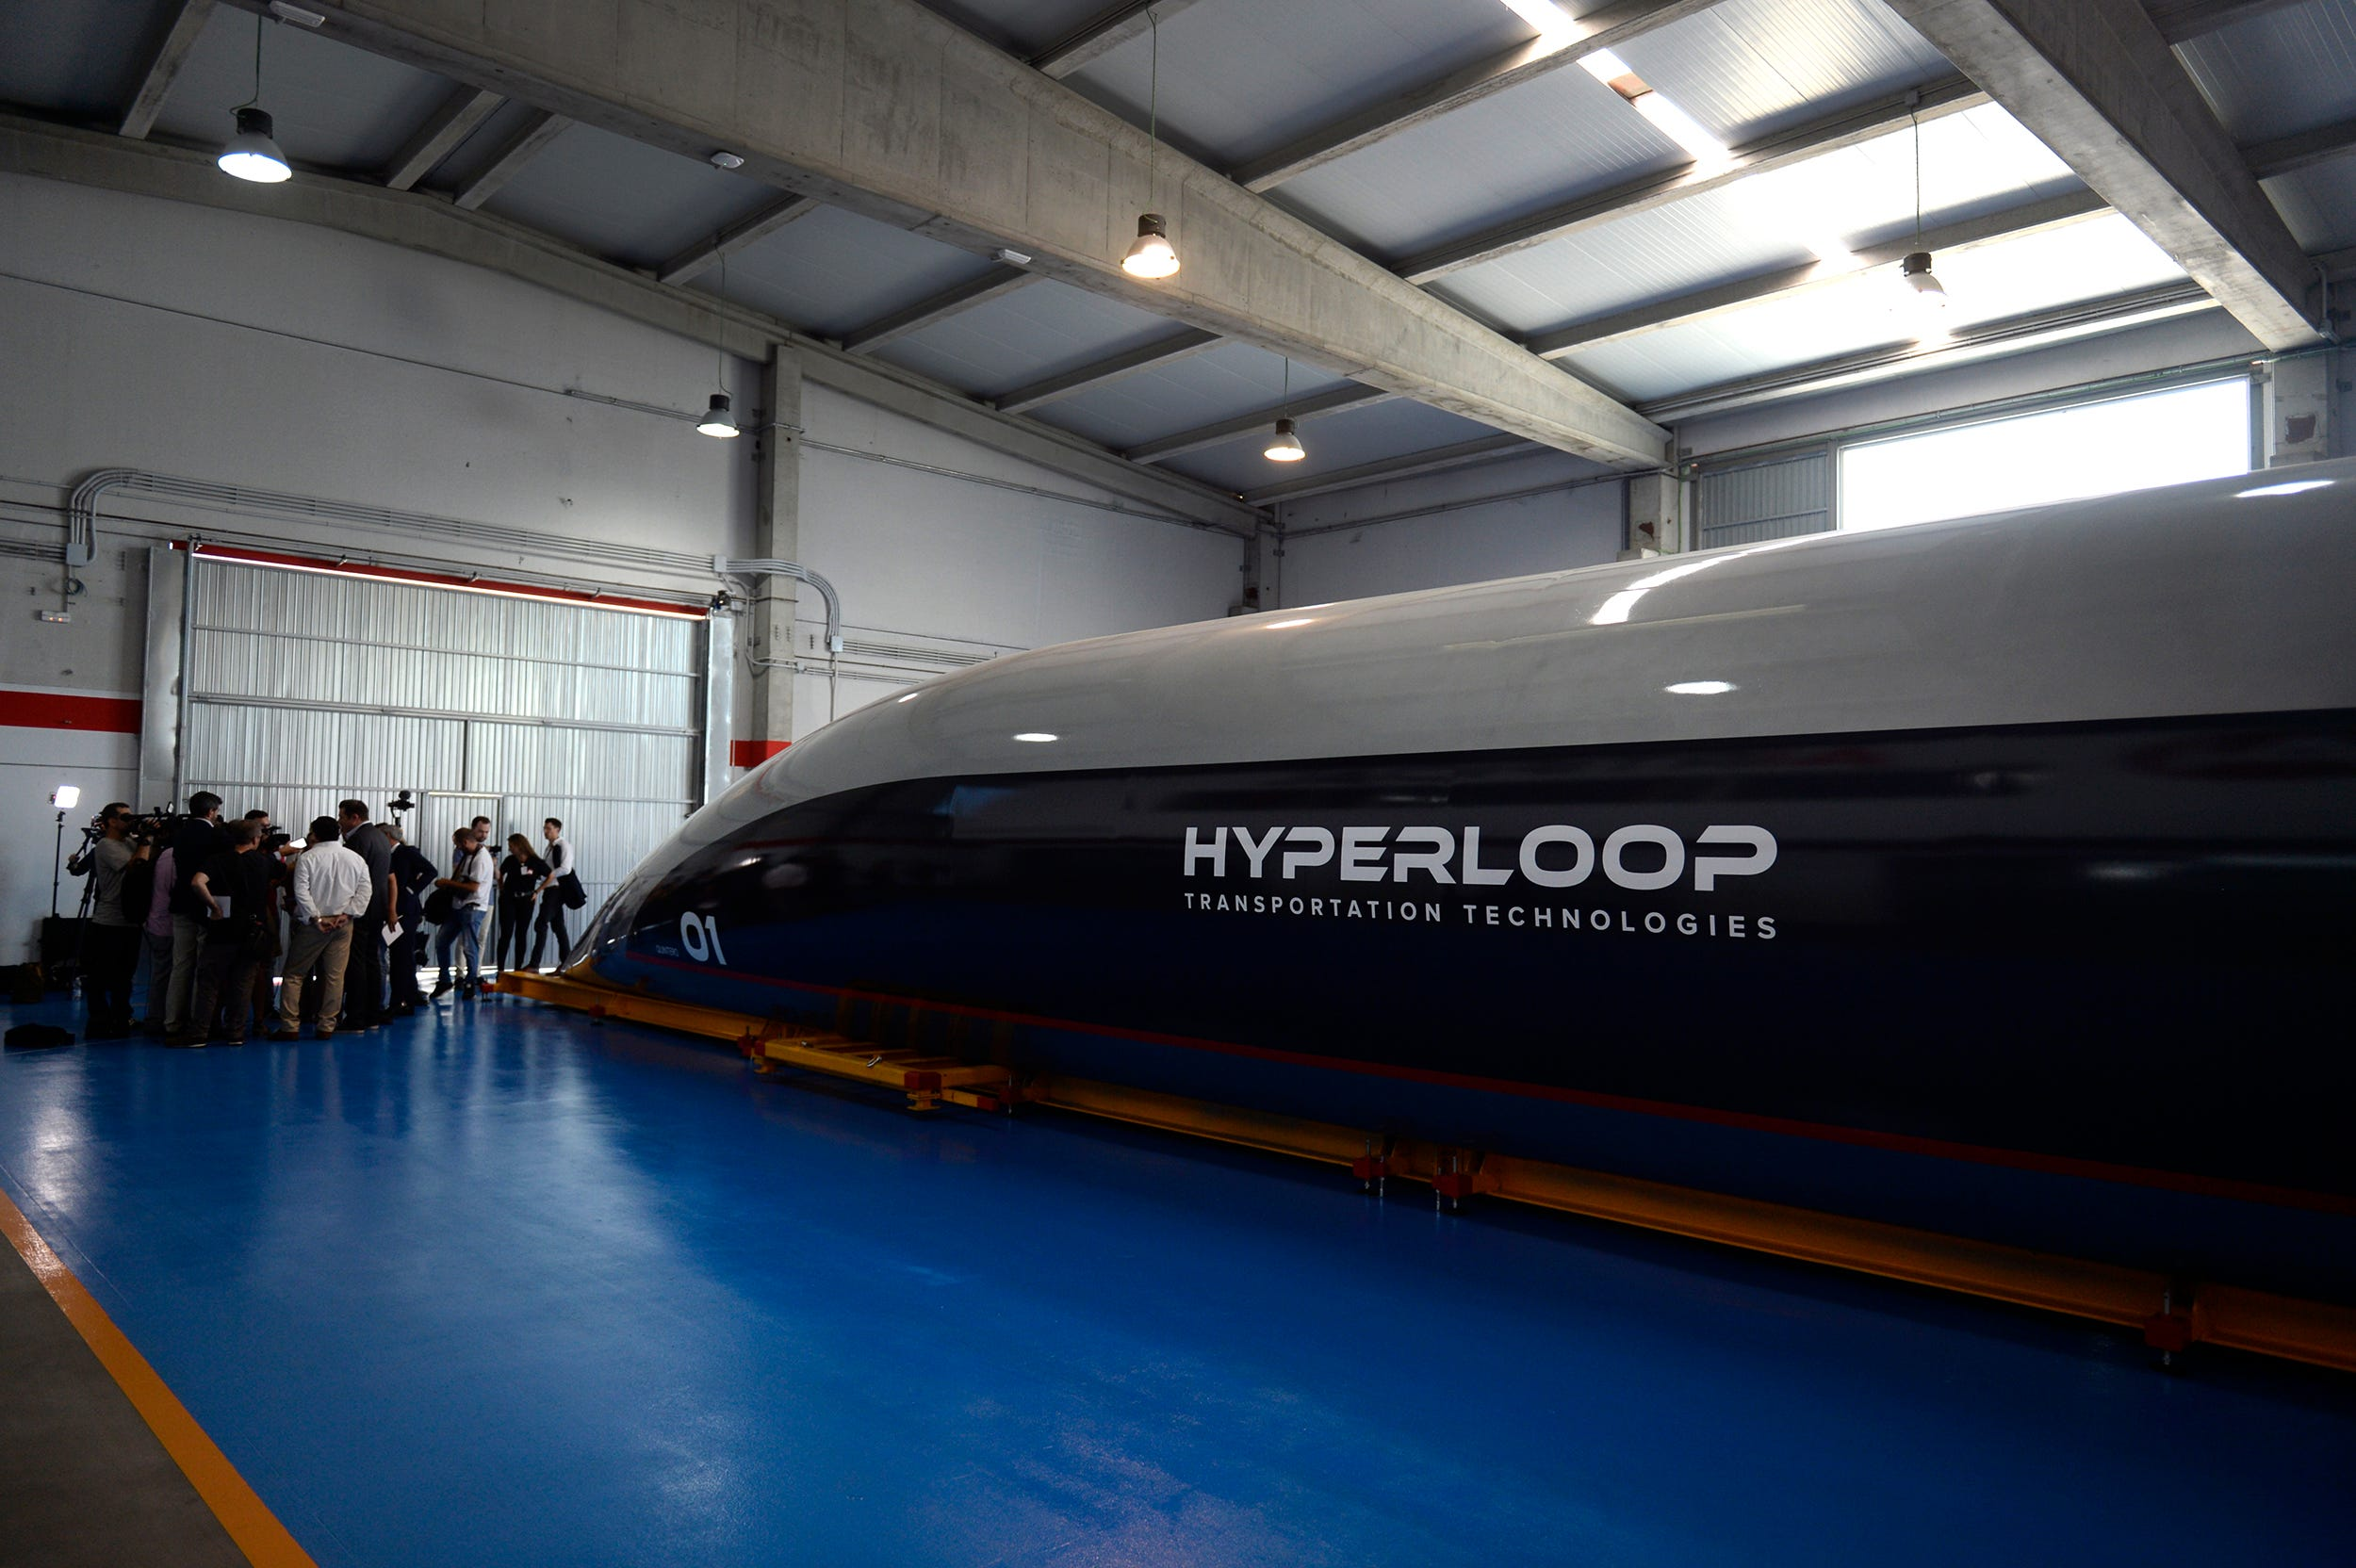 The Hyperloop train from Ilona Mask became reality 45